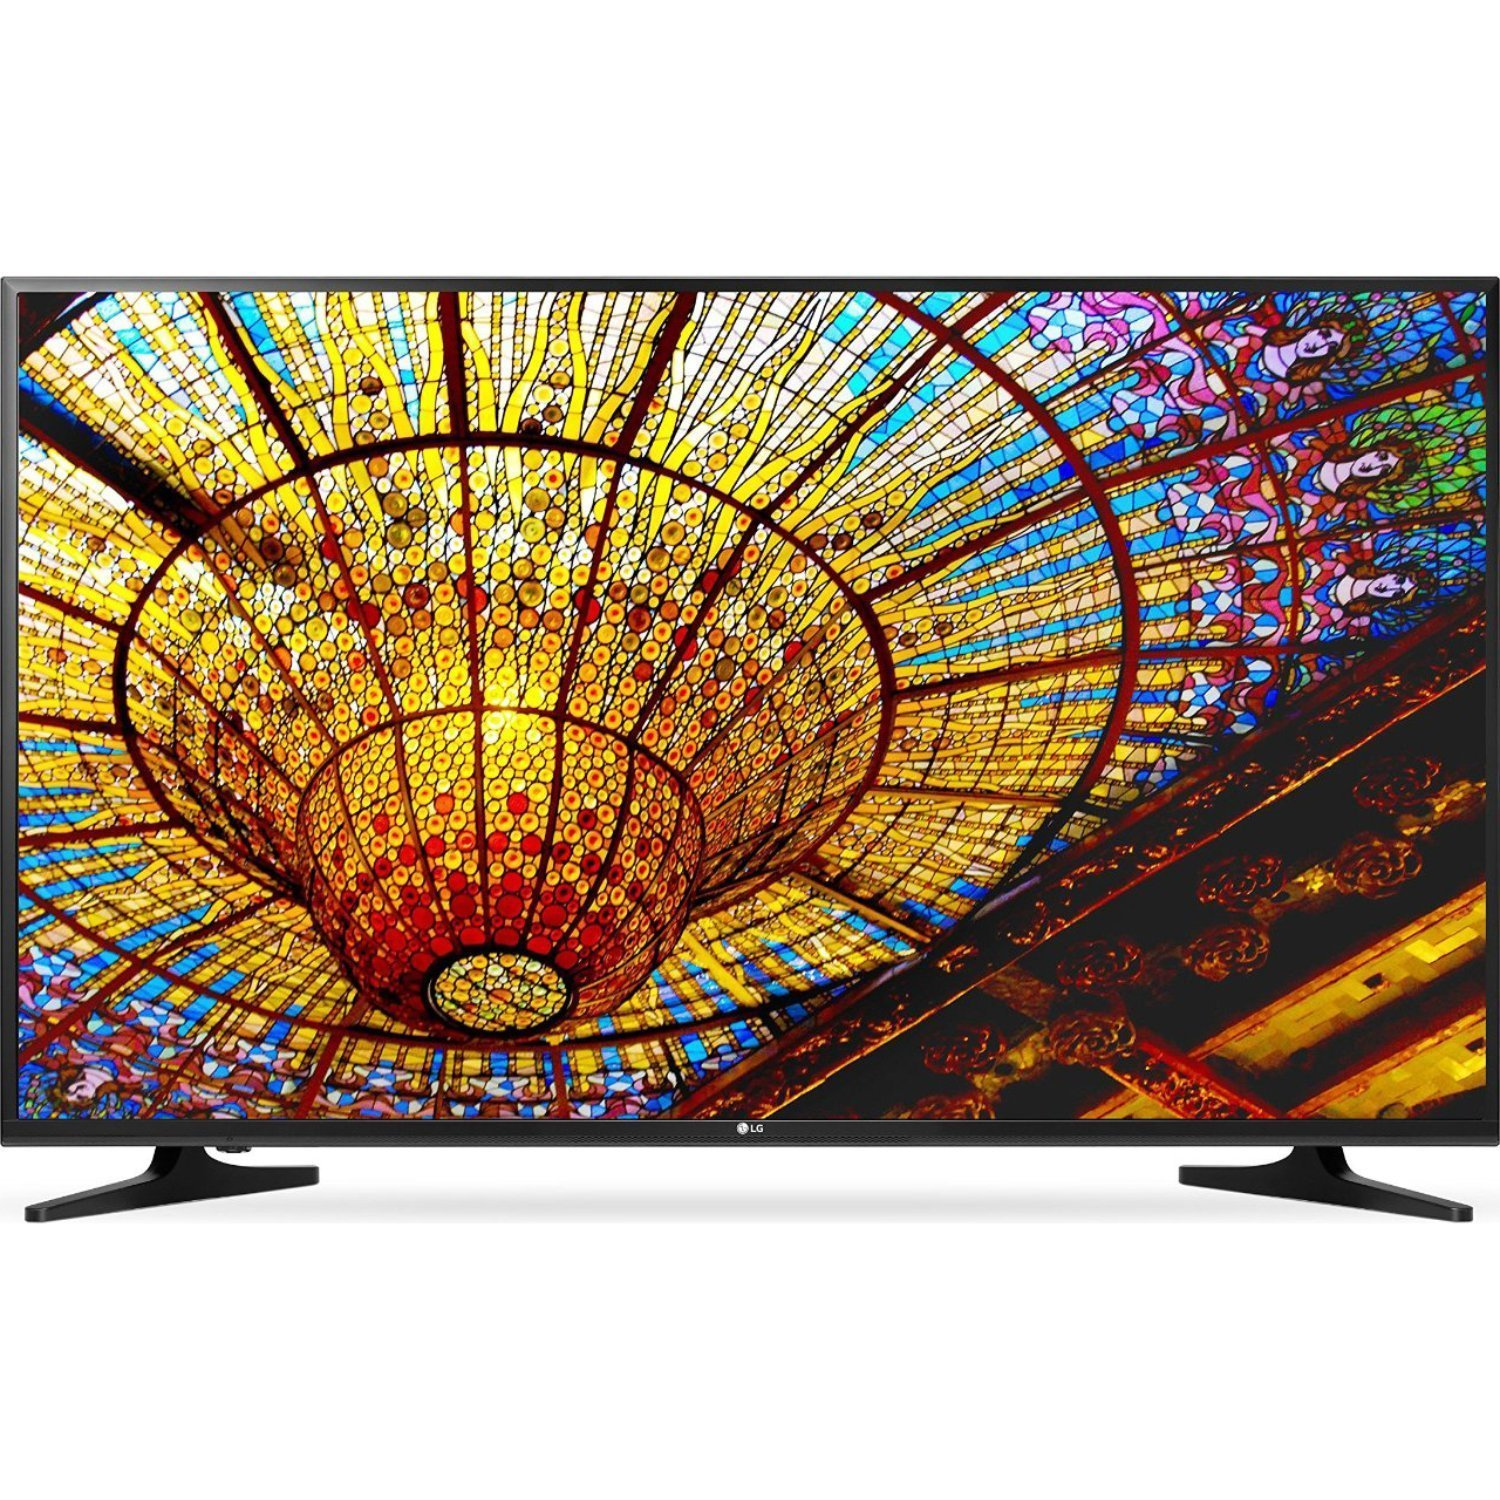 LG 50UH5500 - 50-Inch 4K Ultra HD Smart LED TV w/ webOS 3.0 (2016 Latest Model)